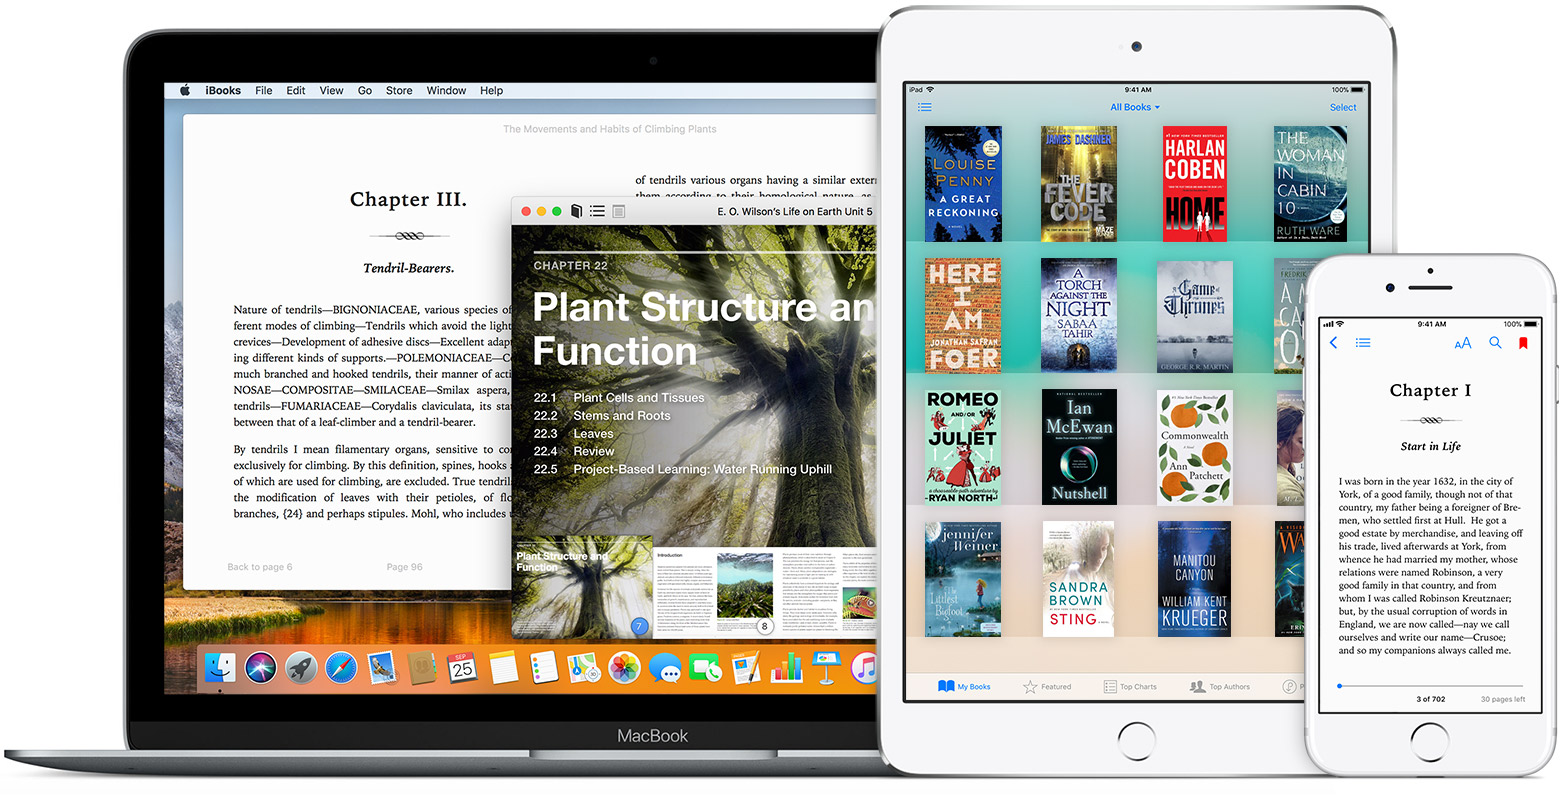 iBooks library location hero image